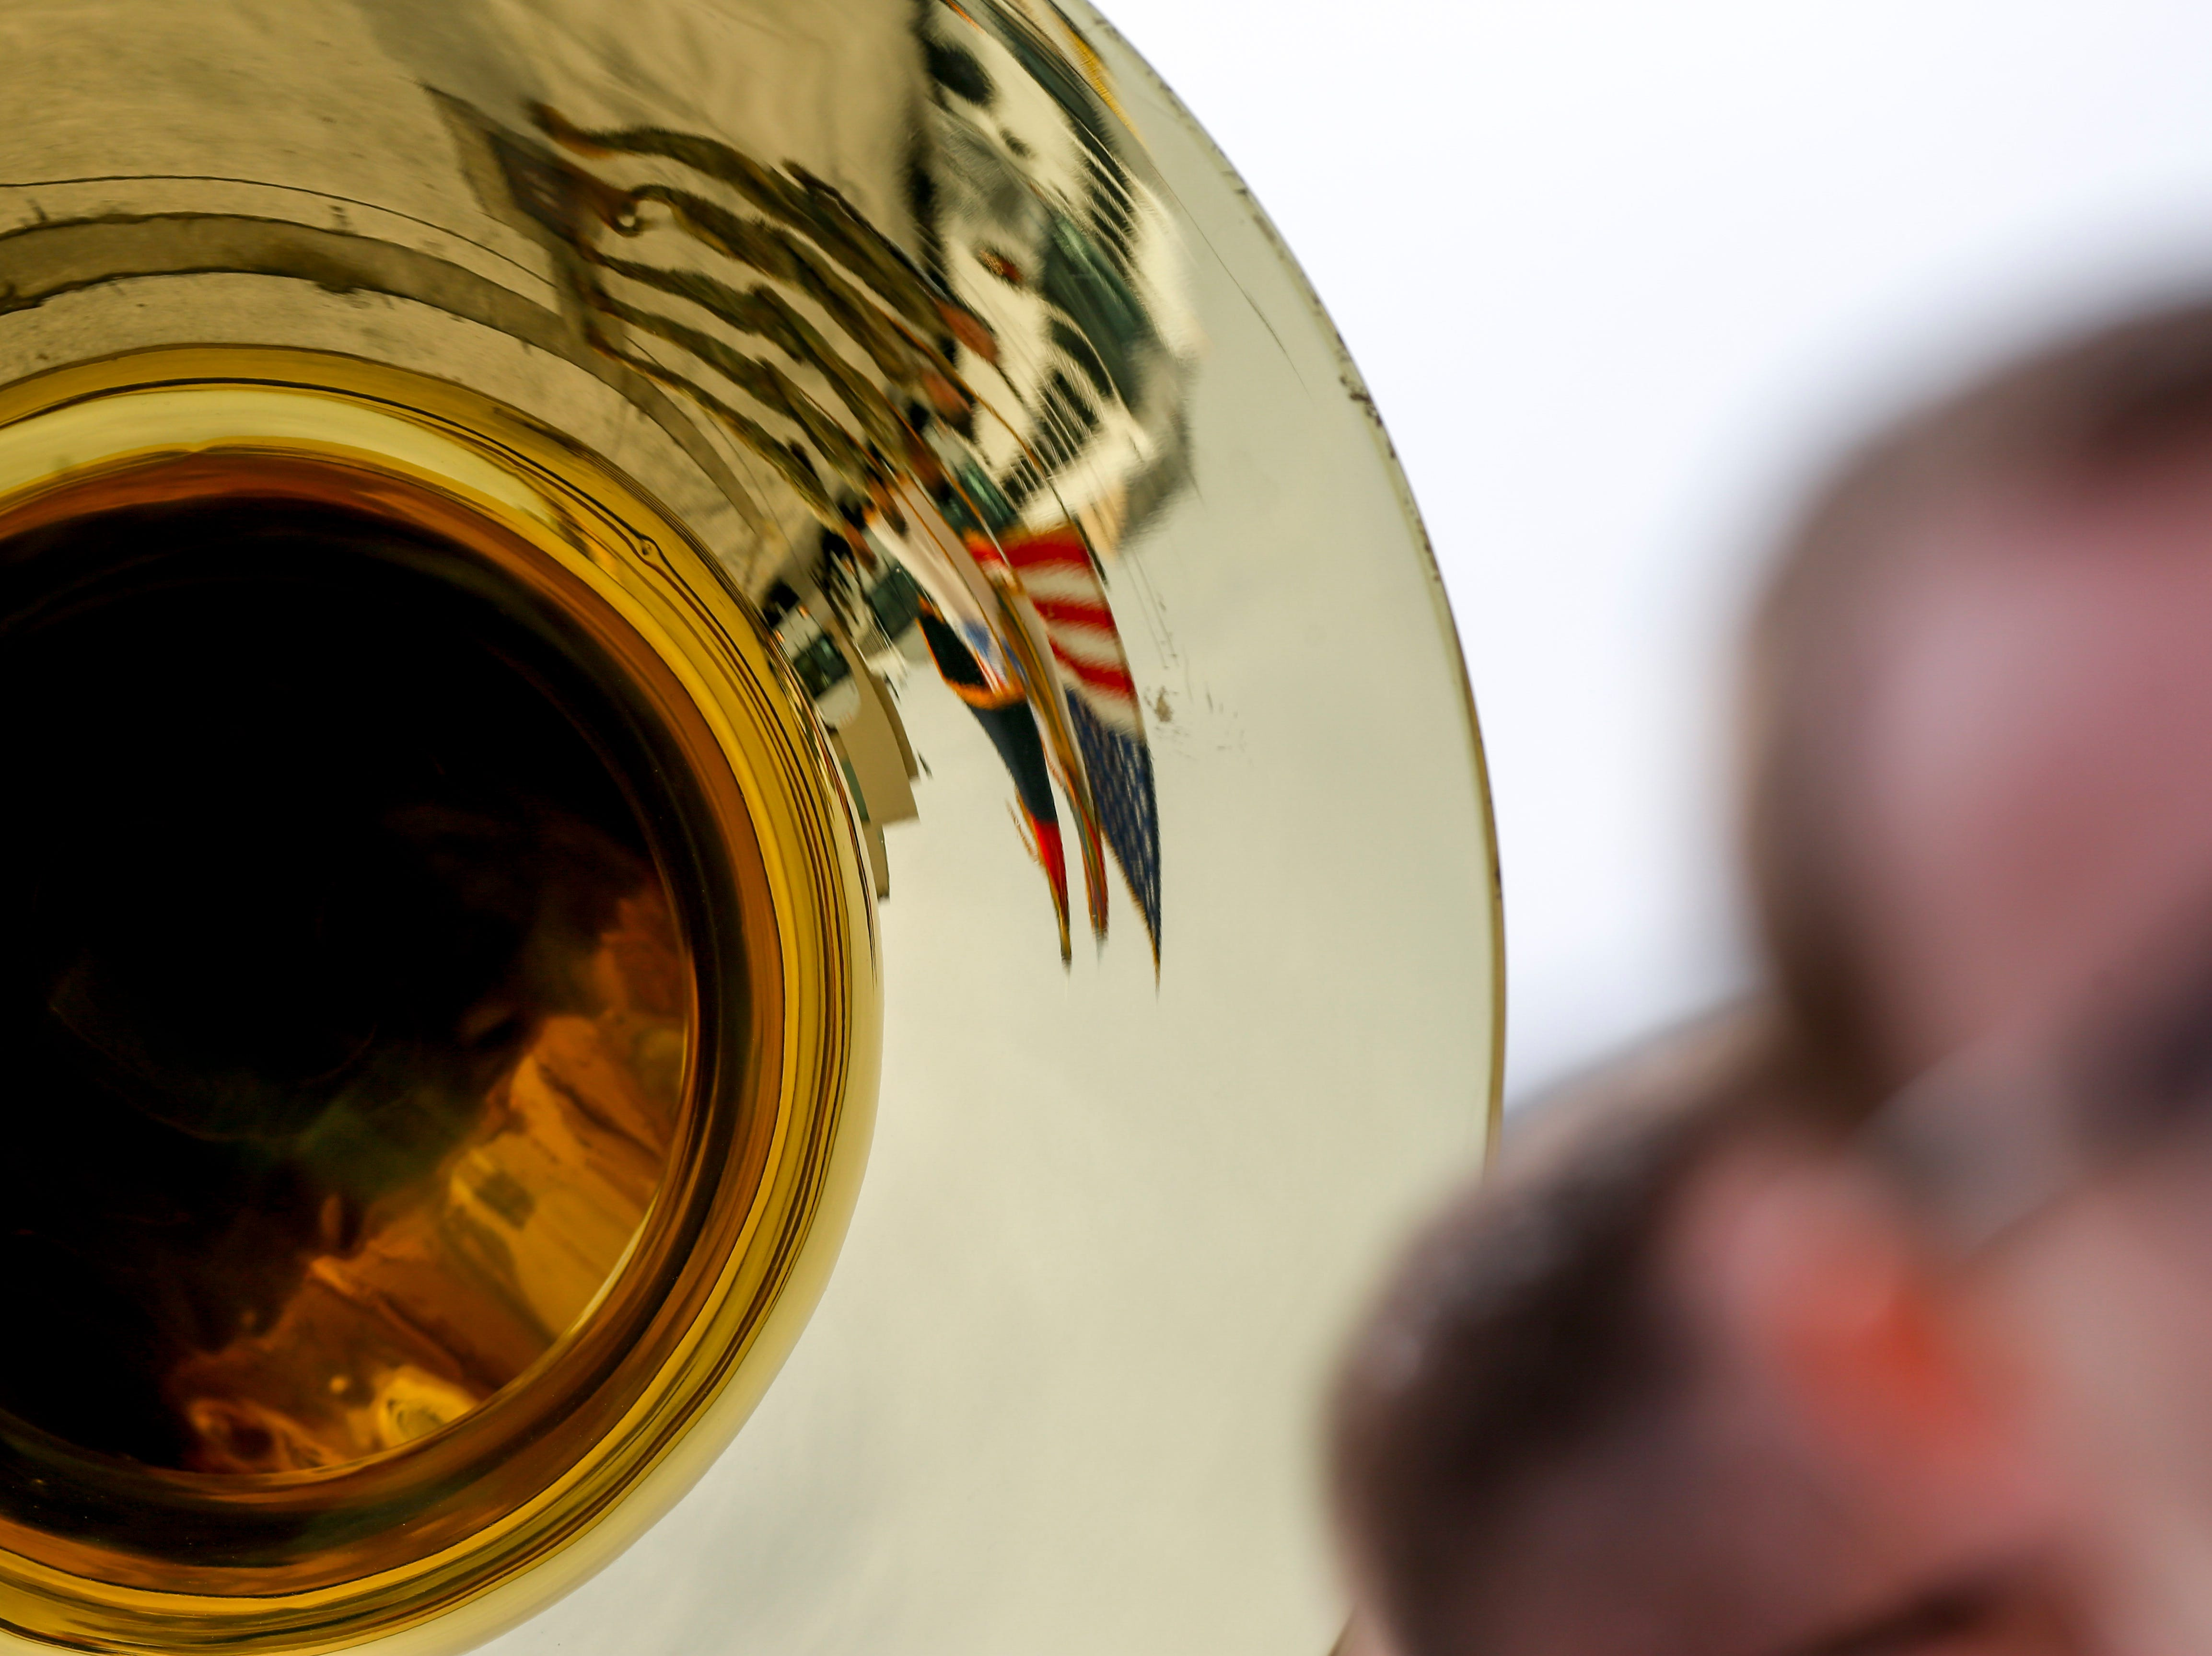 The American flag and 101st Airborne Division colors reflect on a sousaphone from the Army Band during the return of soldiers from the 101st Combat Aviation Brigade of 101st Airborne Division (Air Assault) at Campbell Army Air Field in Fort Campbell, KY., on Sunday, March 10, 2019.